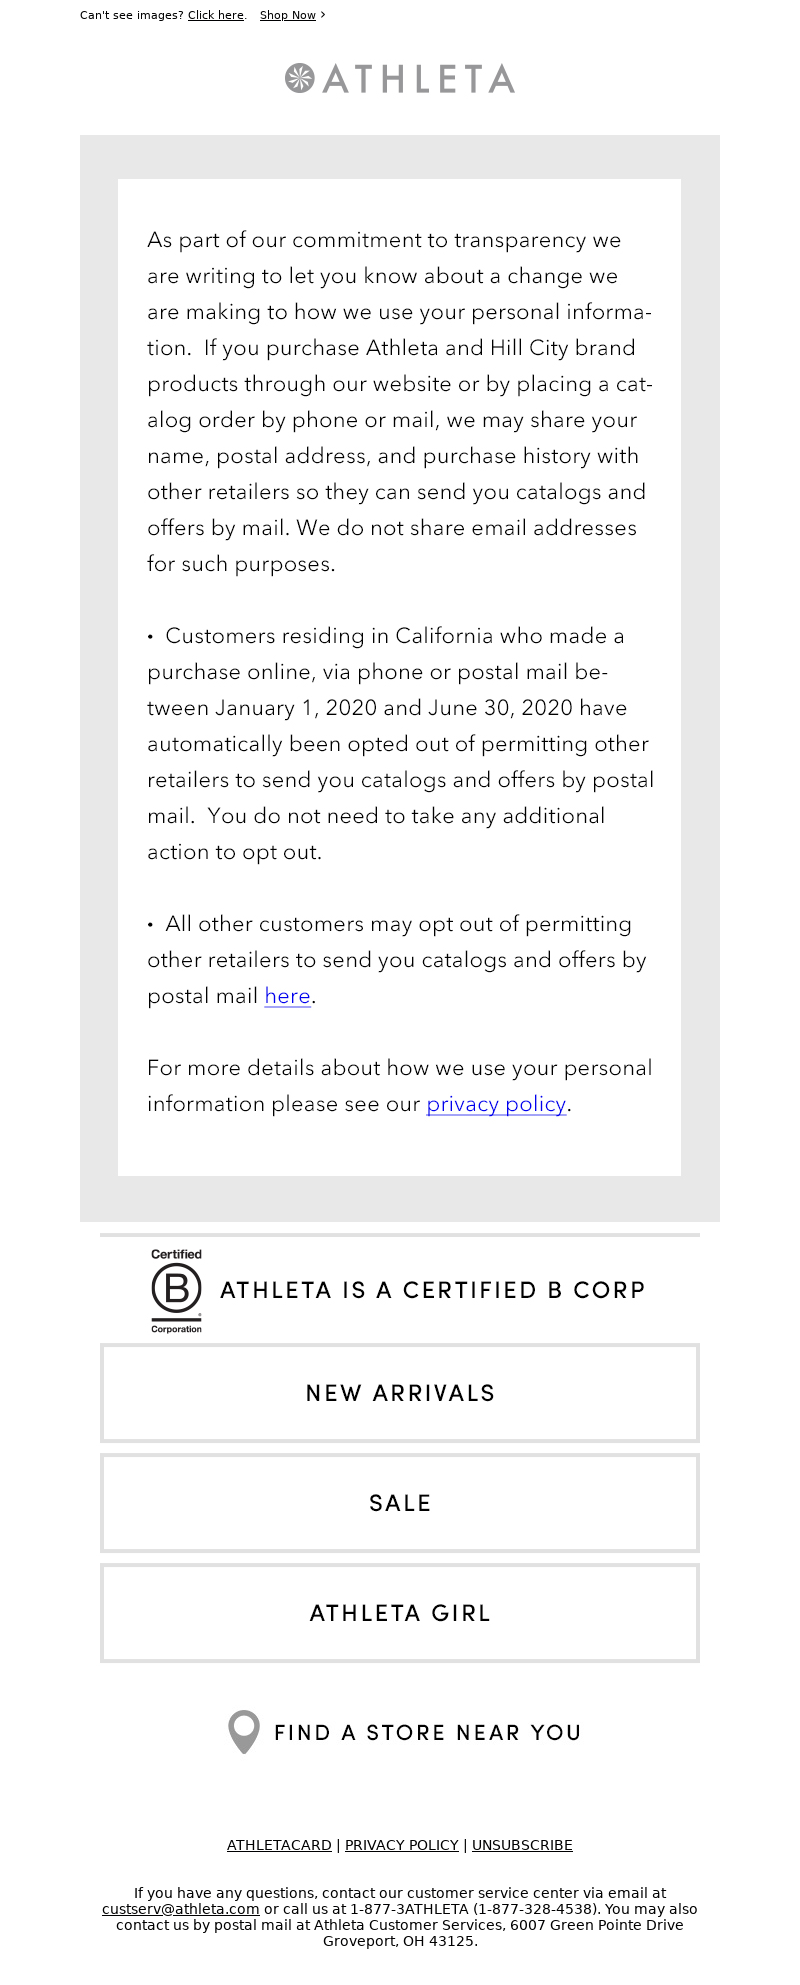 Athleta - Update to our Privacy Policy